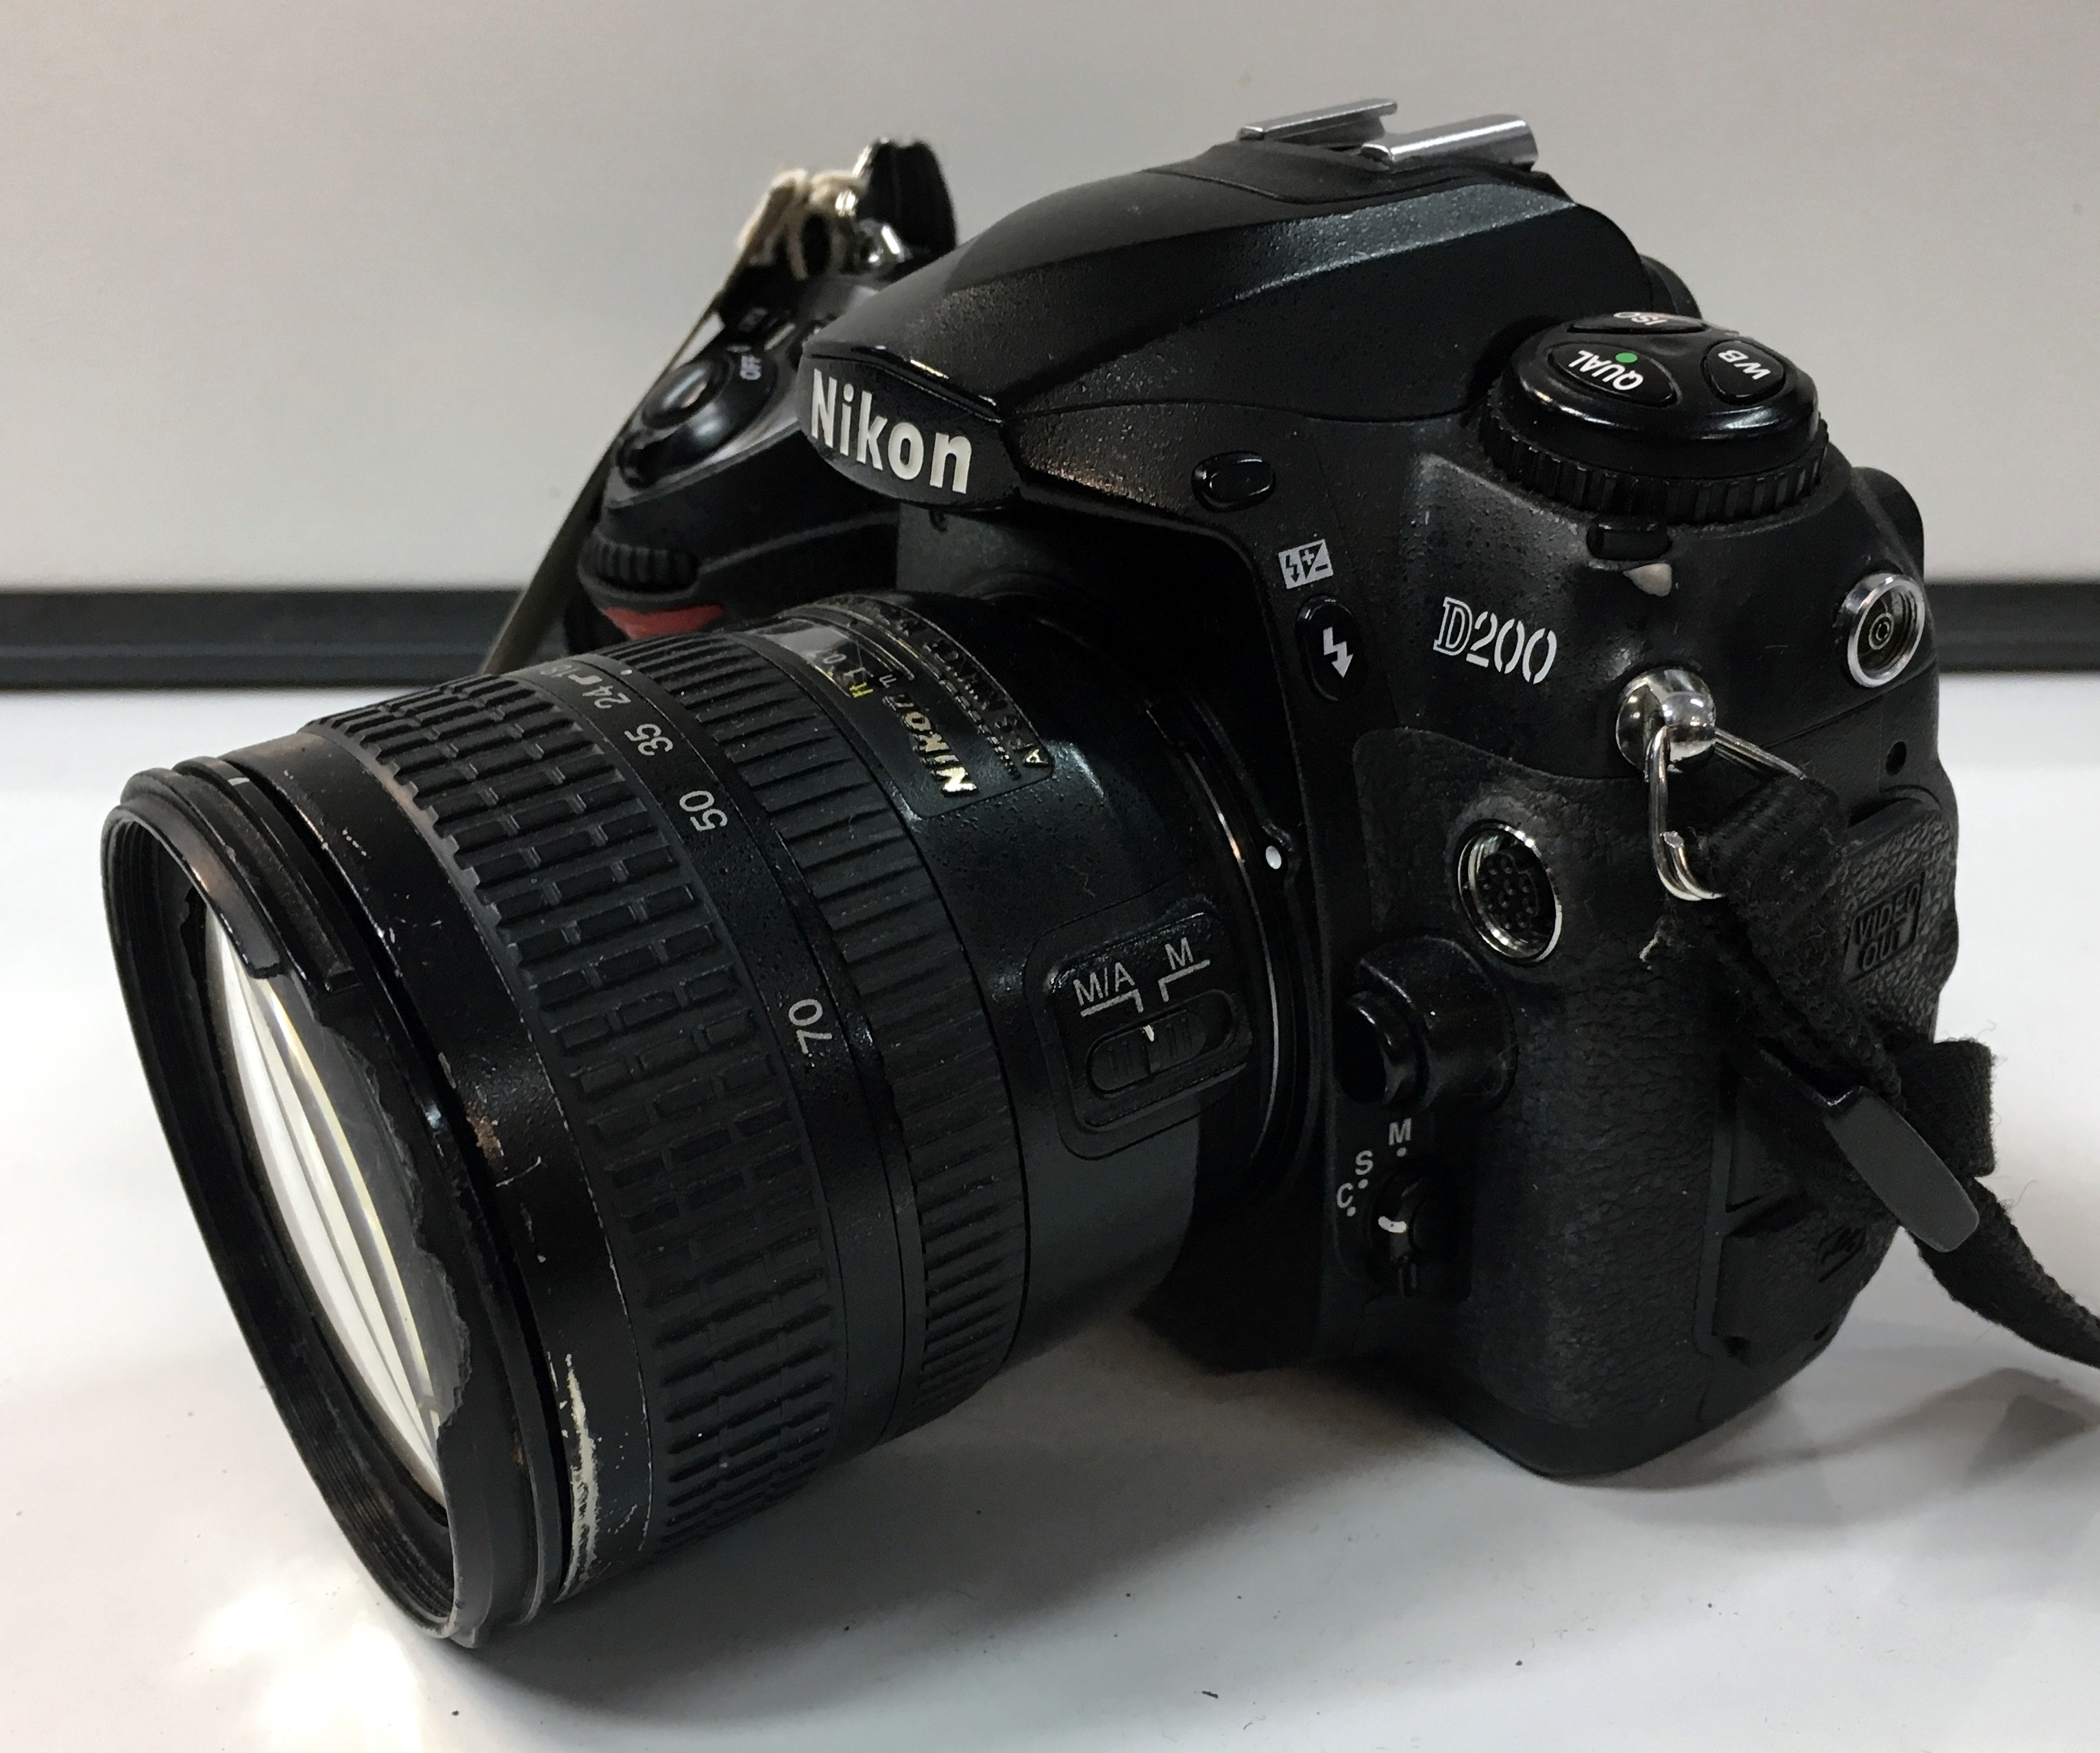 how to find nikon serial number